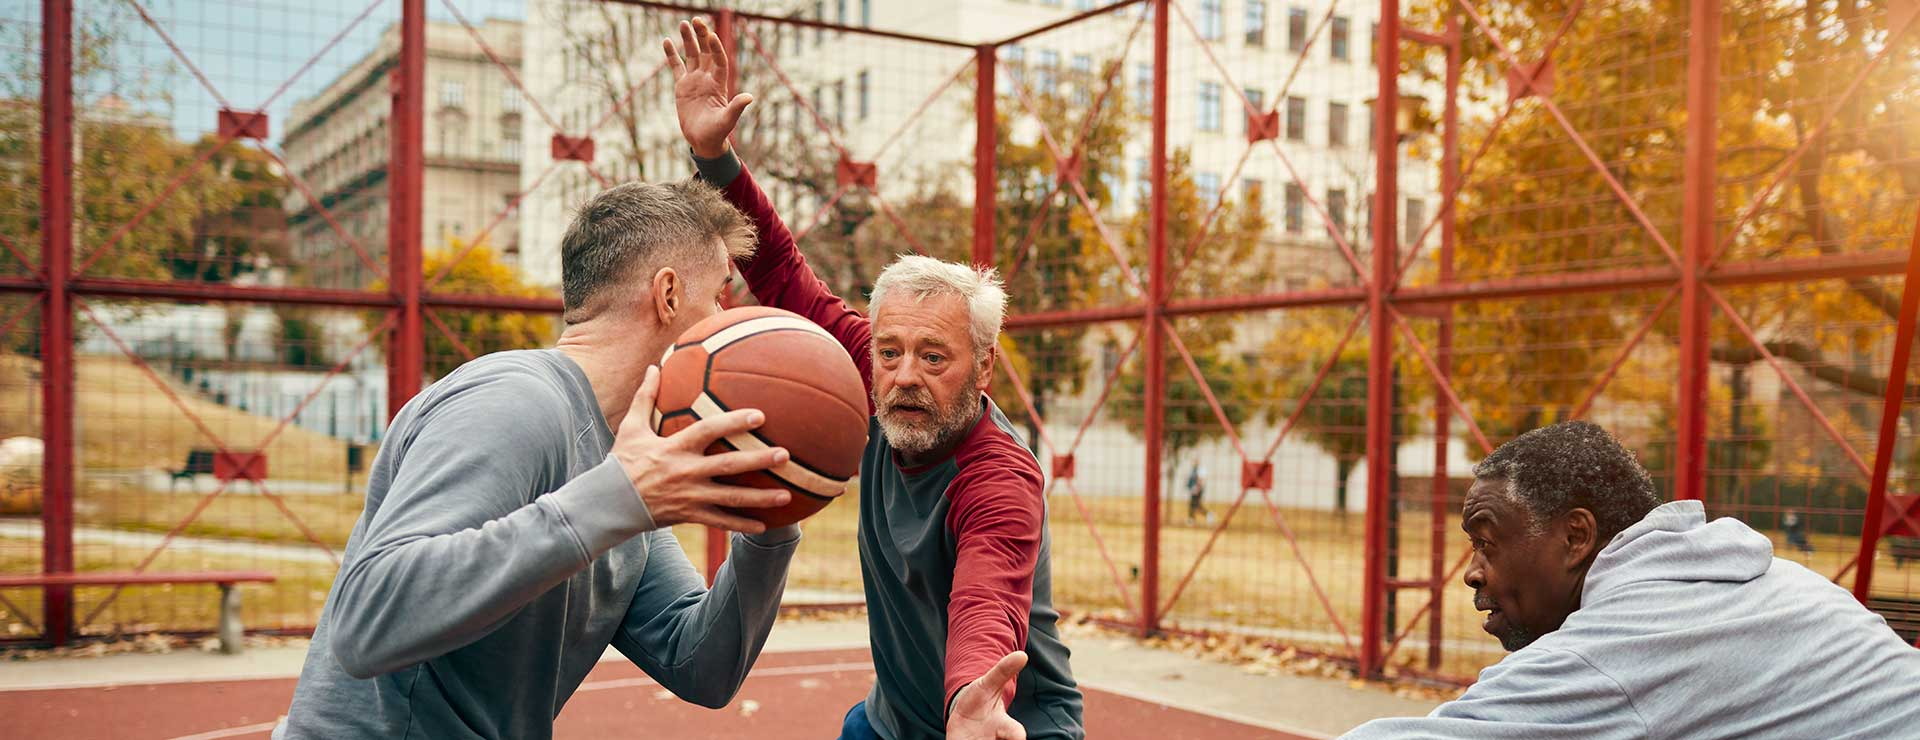 A group of seniors play basketball outdoors